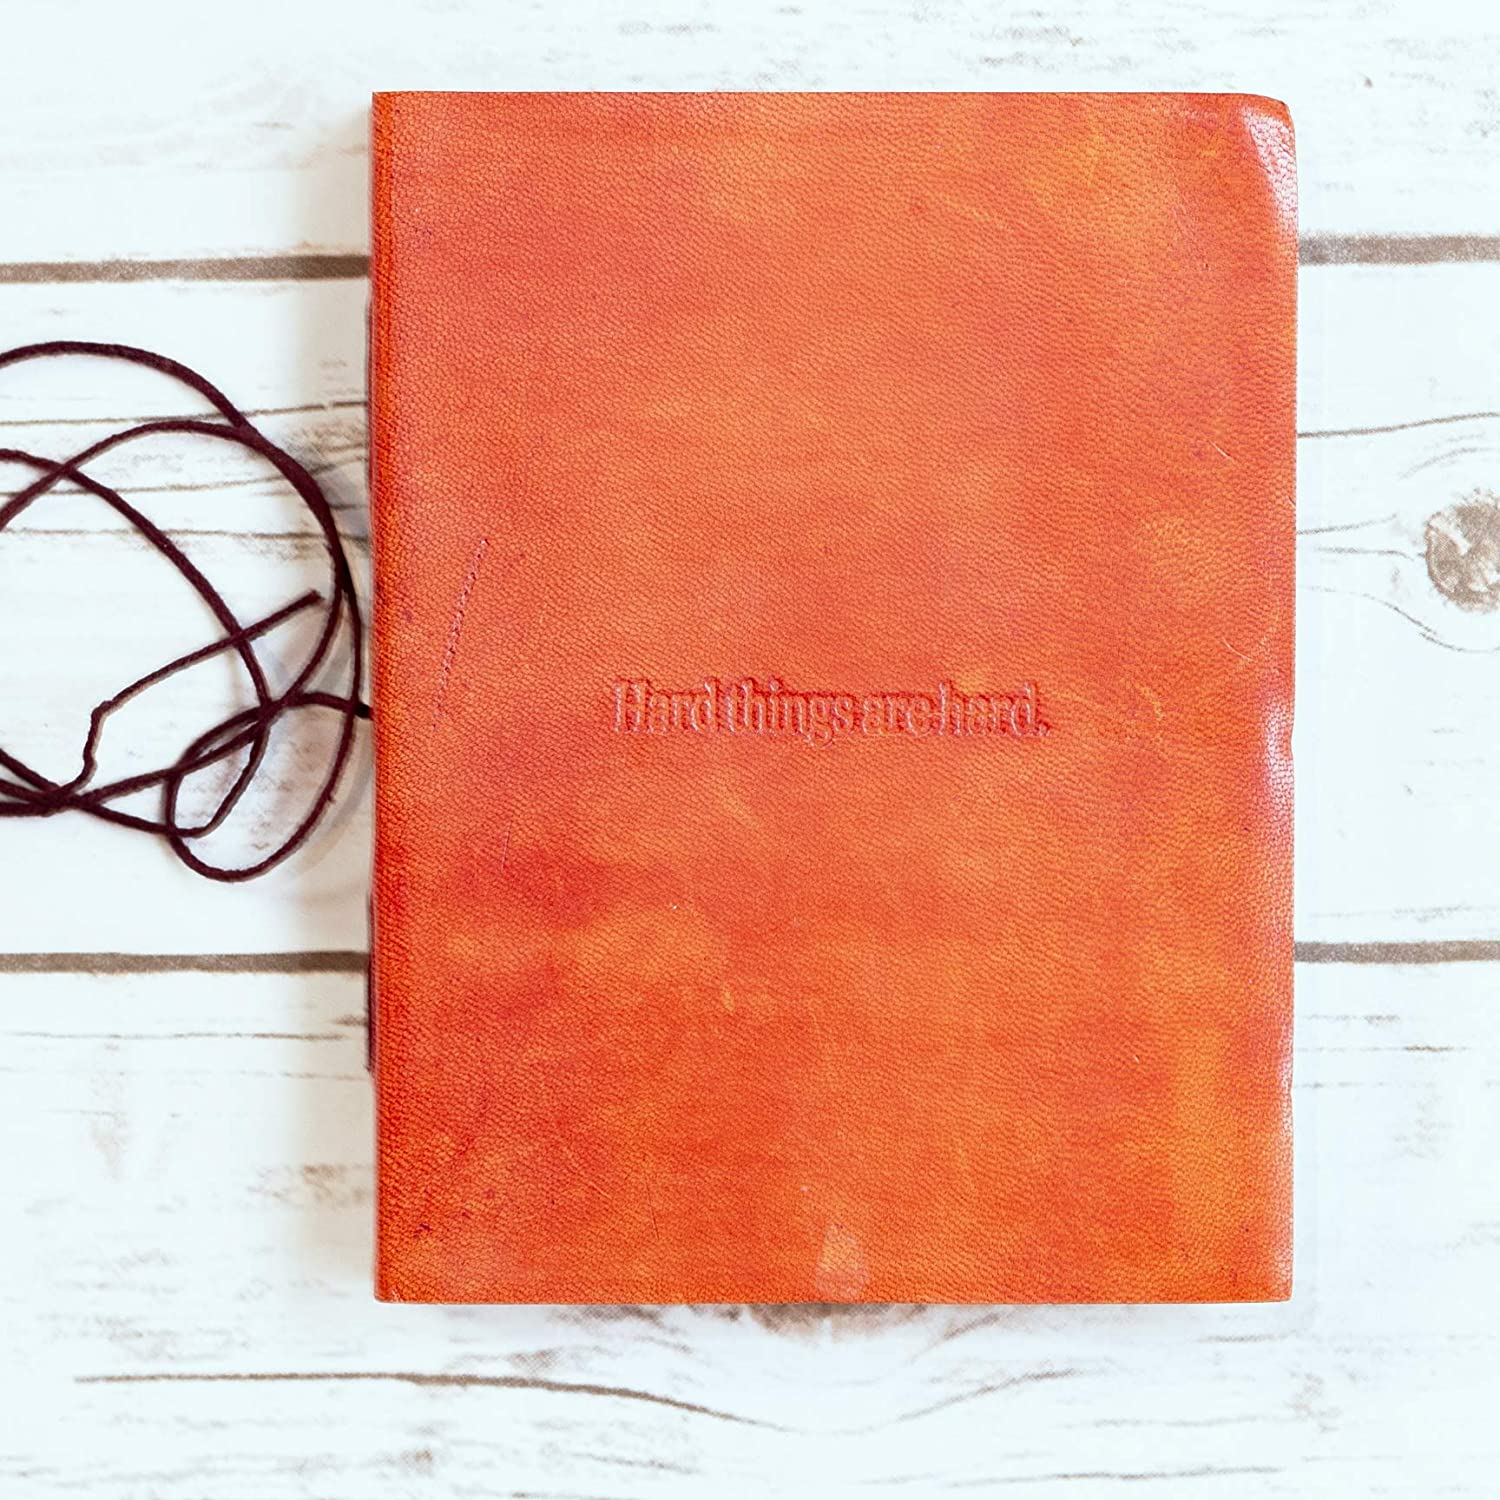 'Hard Things Are Hard' Handmade Leather Journal